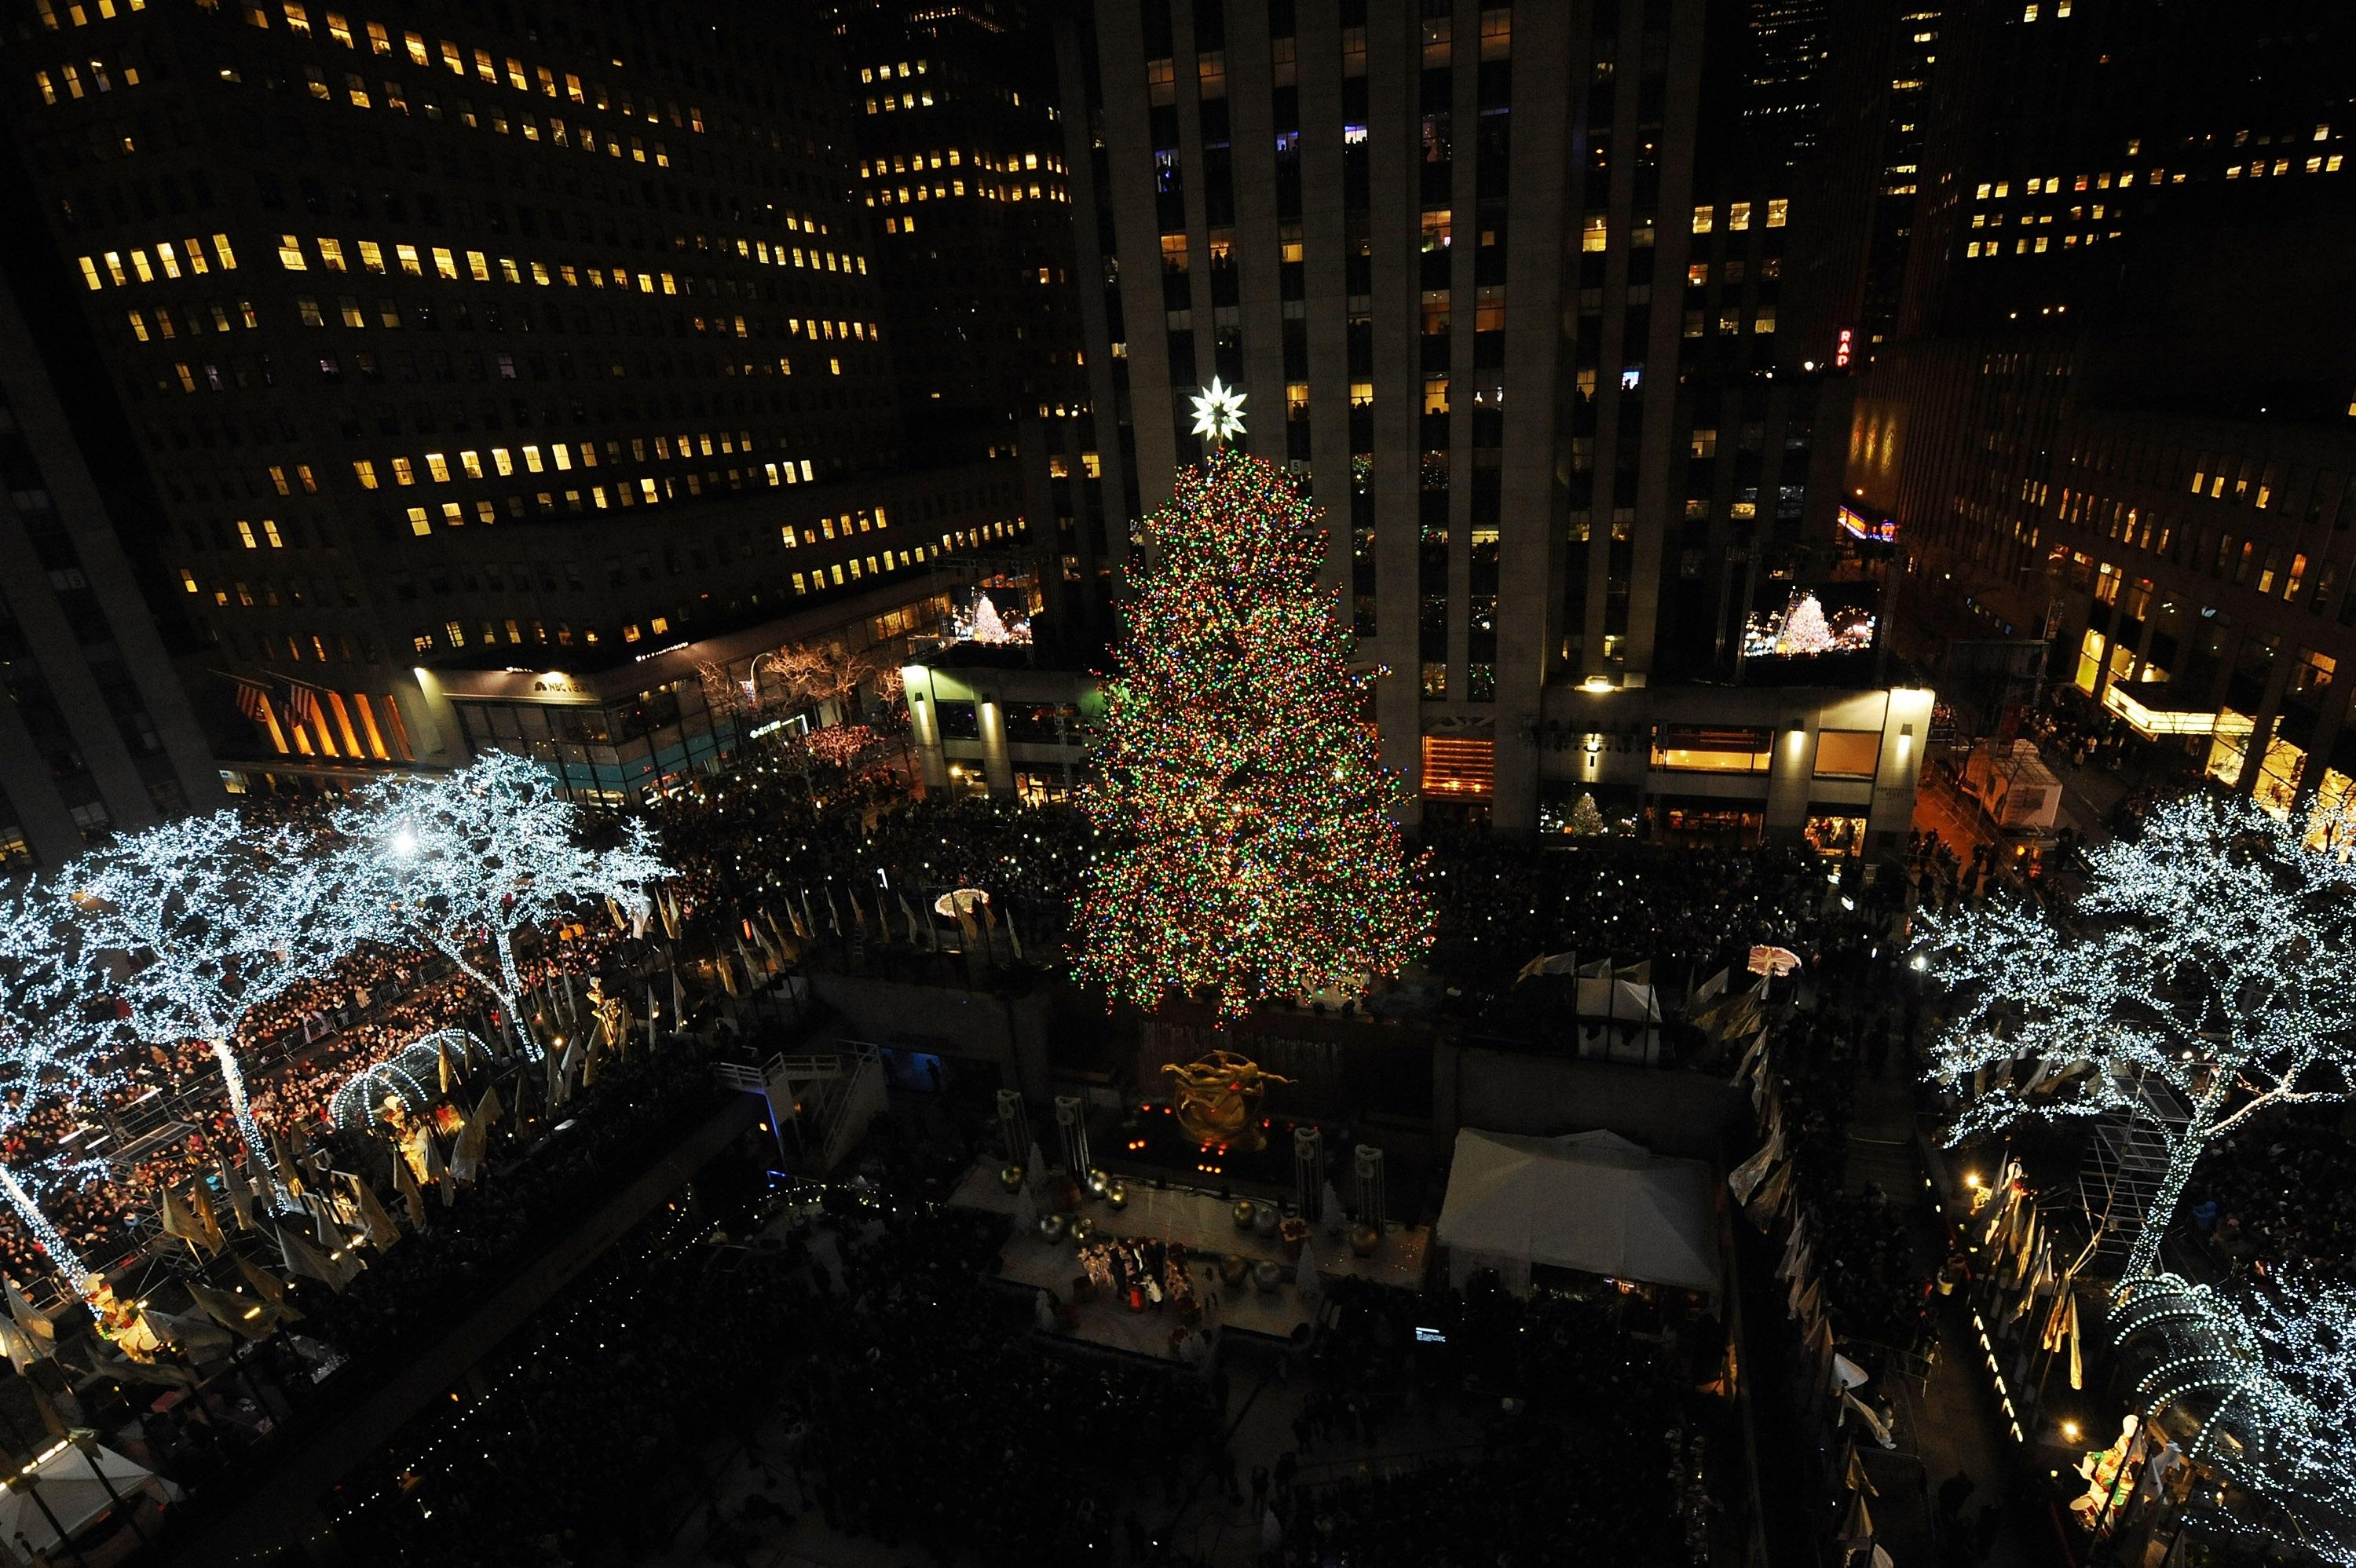 a general view of the atmosphere at the 82nd annual rockefeller christmas tree lighting ceremony at rockefeller center on dec 3 2014 in new york city - New York Christmas Tree Lighting 2014